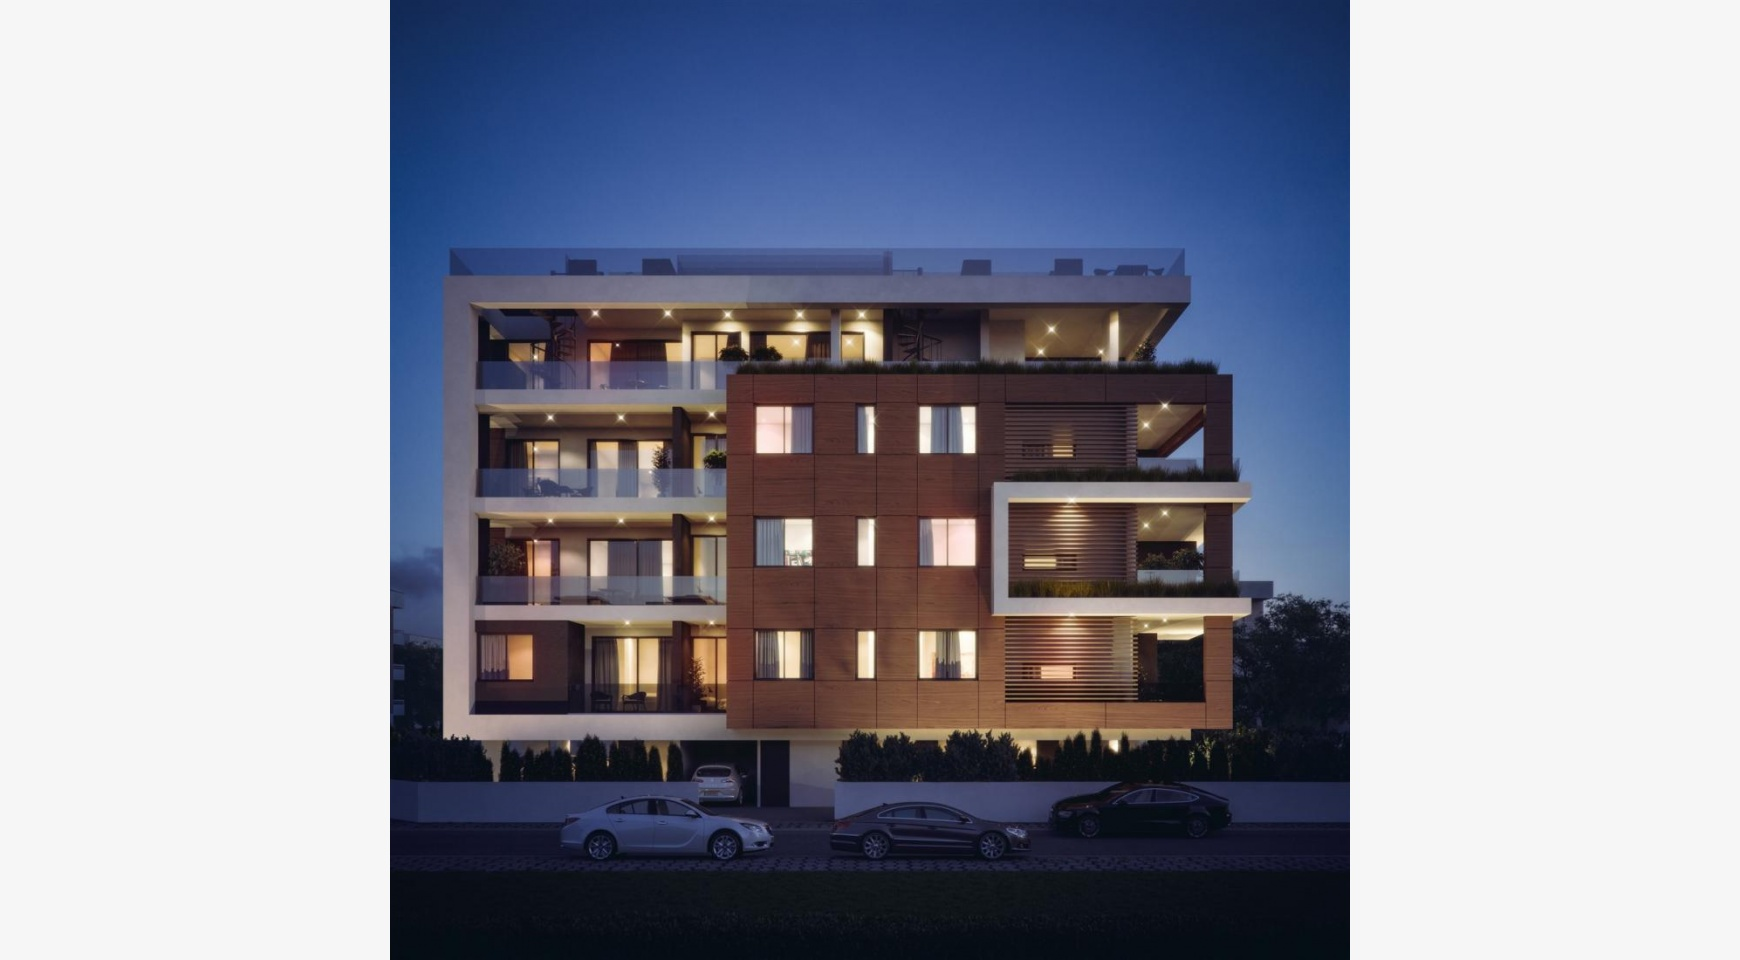 Malibu Residence. New Modern 3 Bedroom Apartment 202 in a Luxury Complex - 2